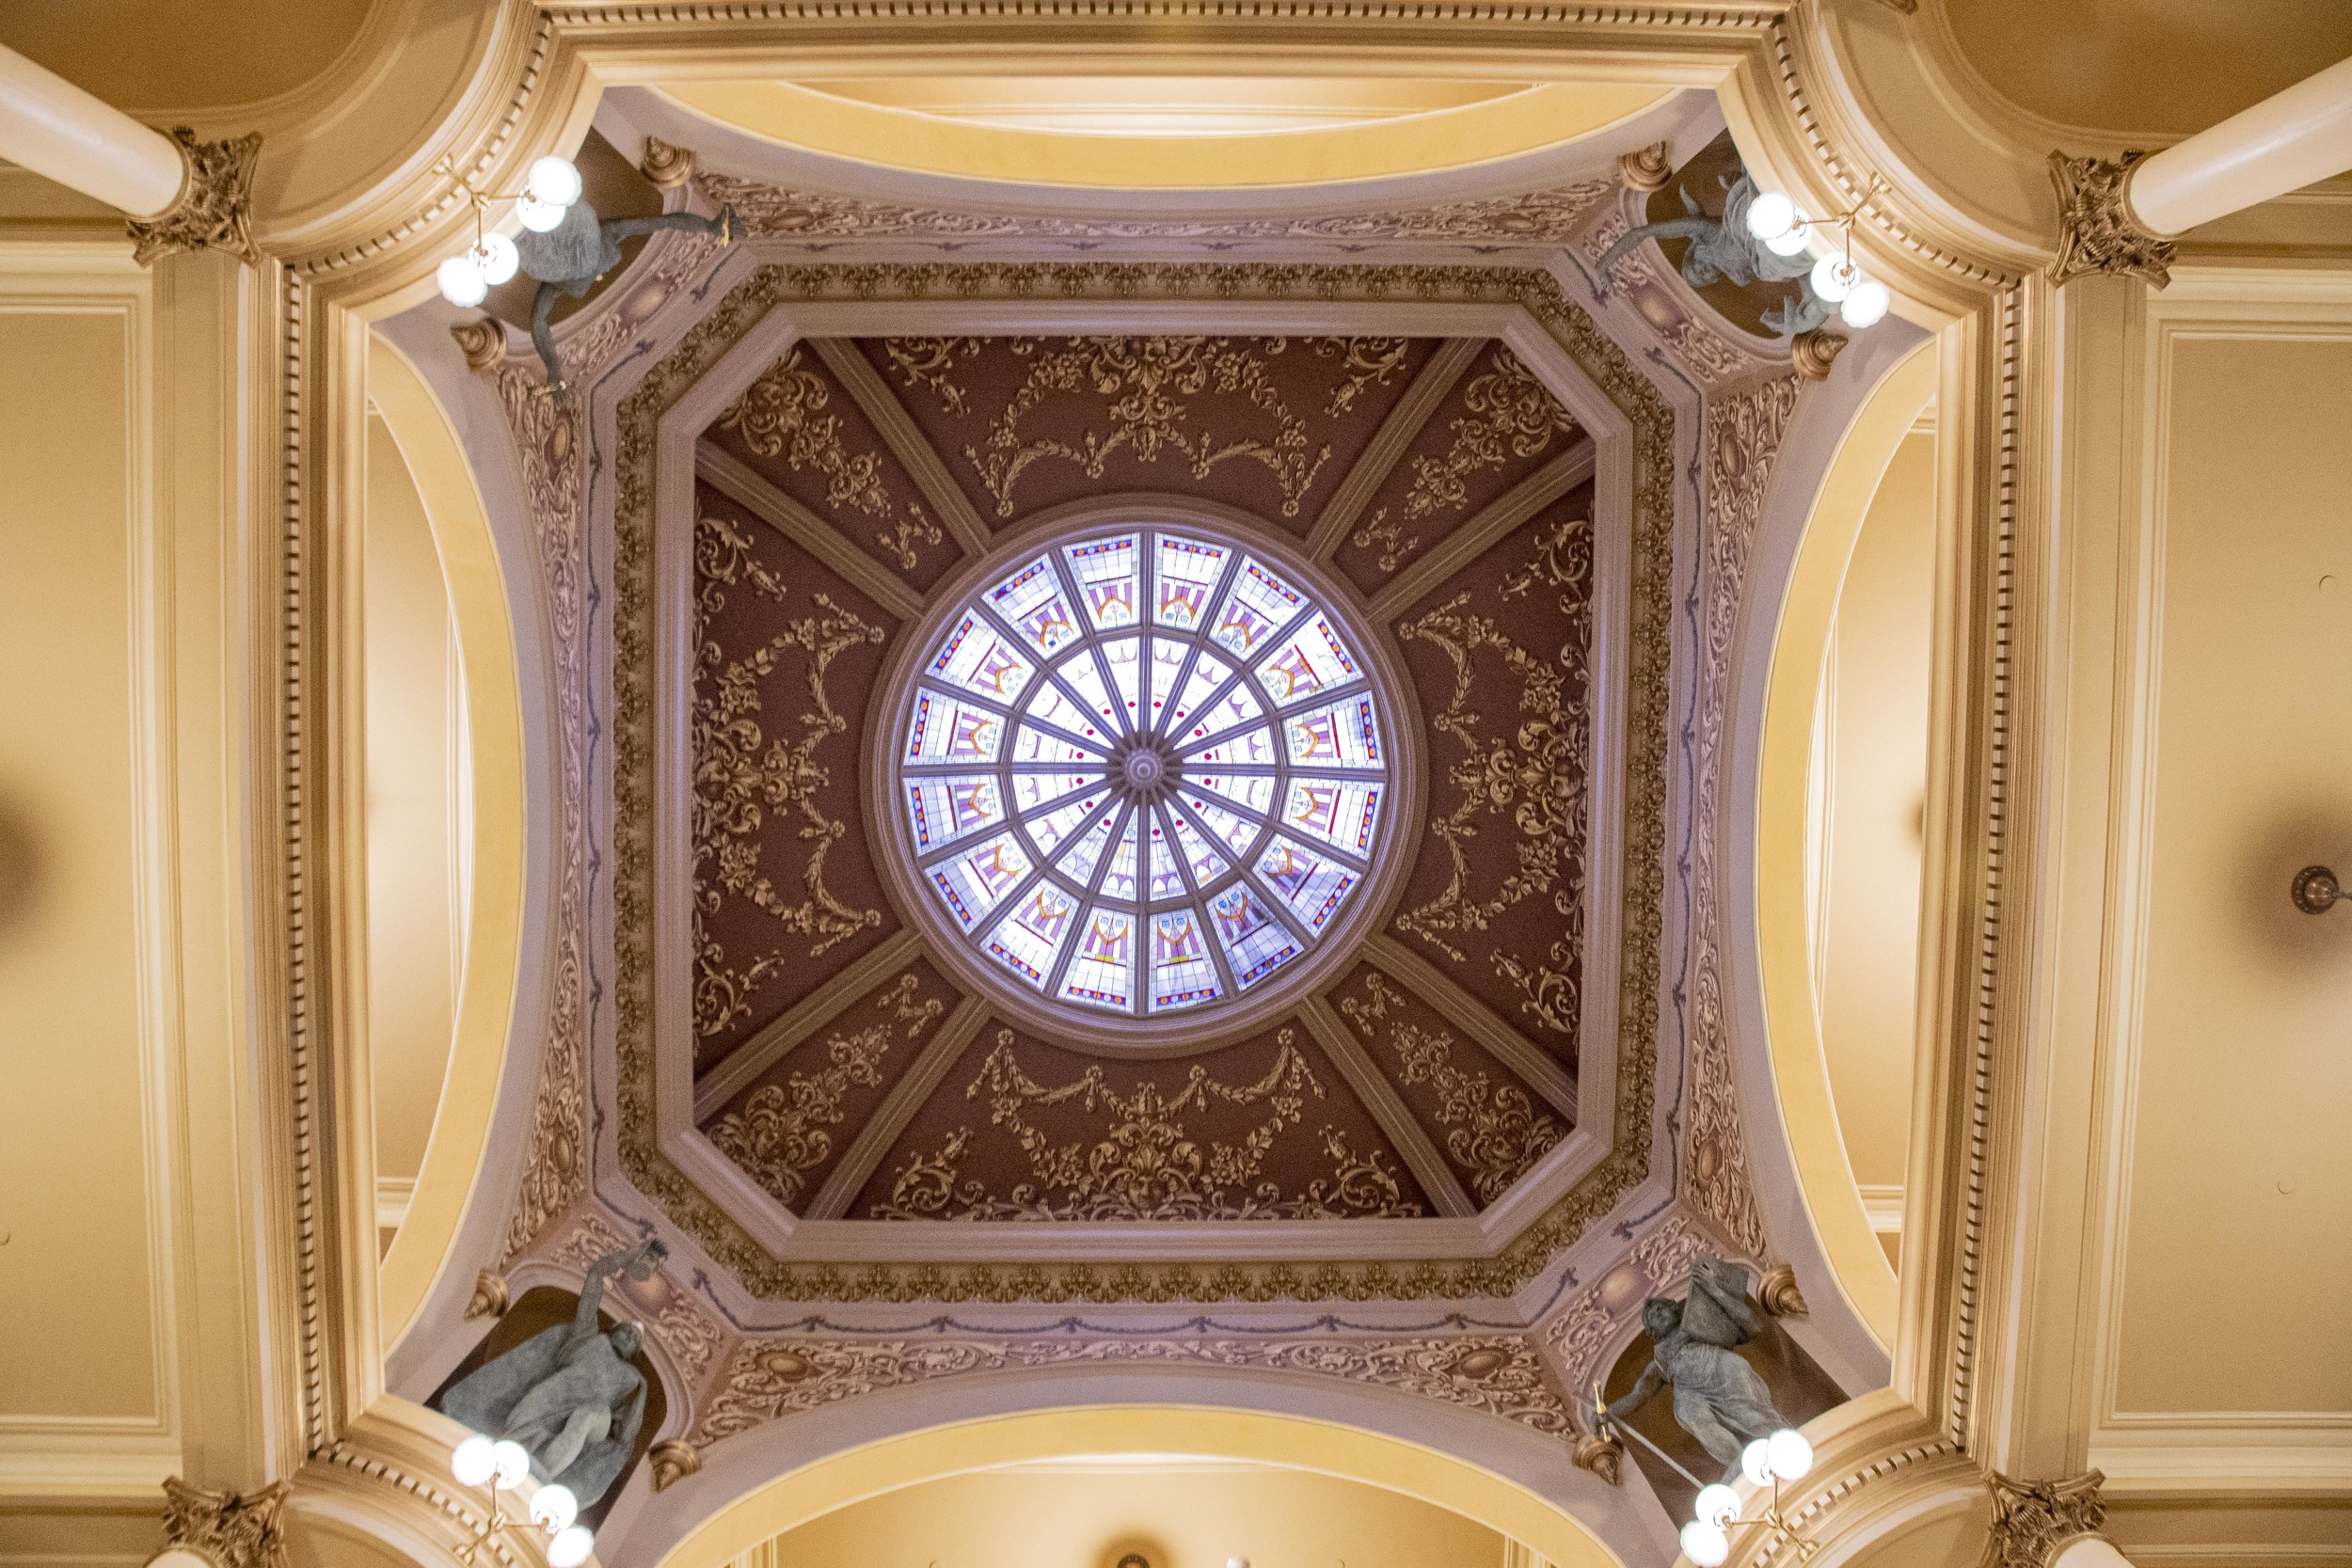 Surrounded by the recently restored 1888 decorative paint, four new bronze sculptures now stand in niches in the rotunda of the Wyoming Capitol.